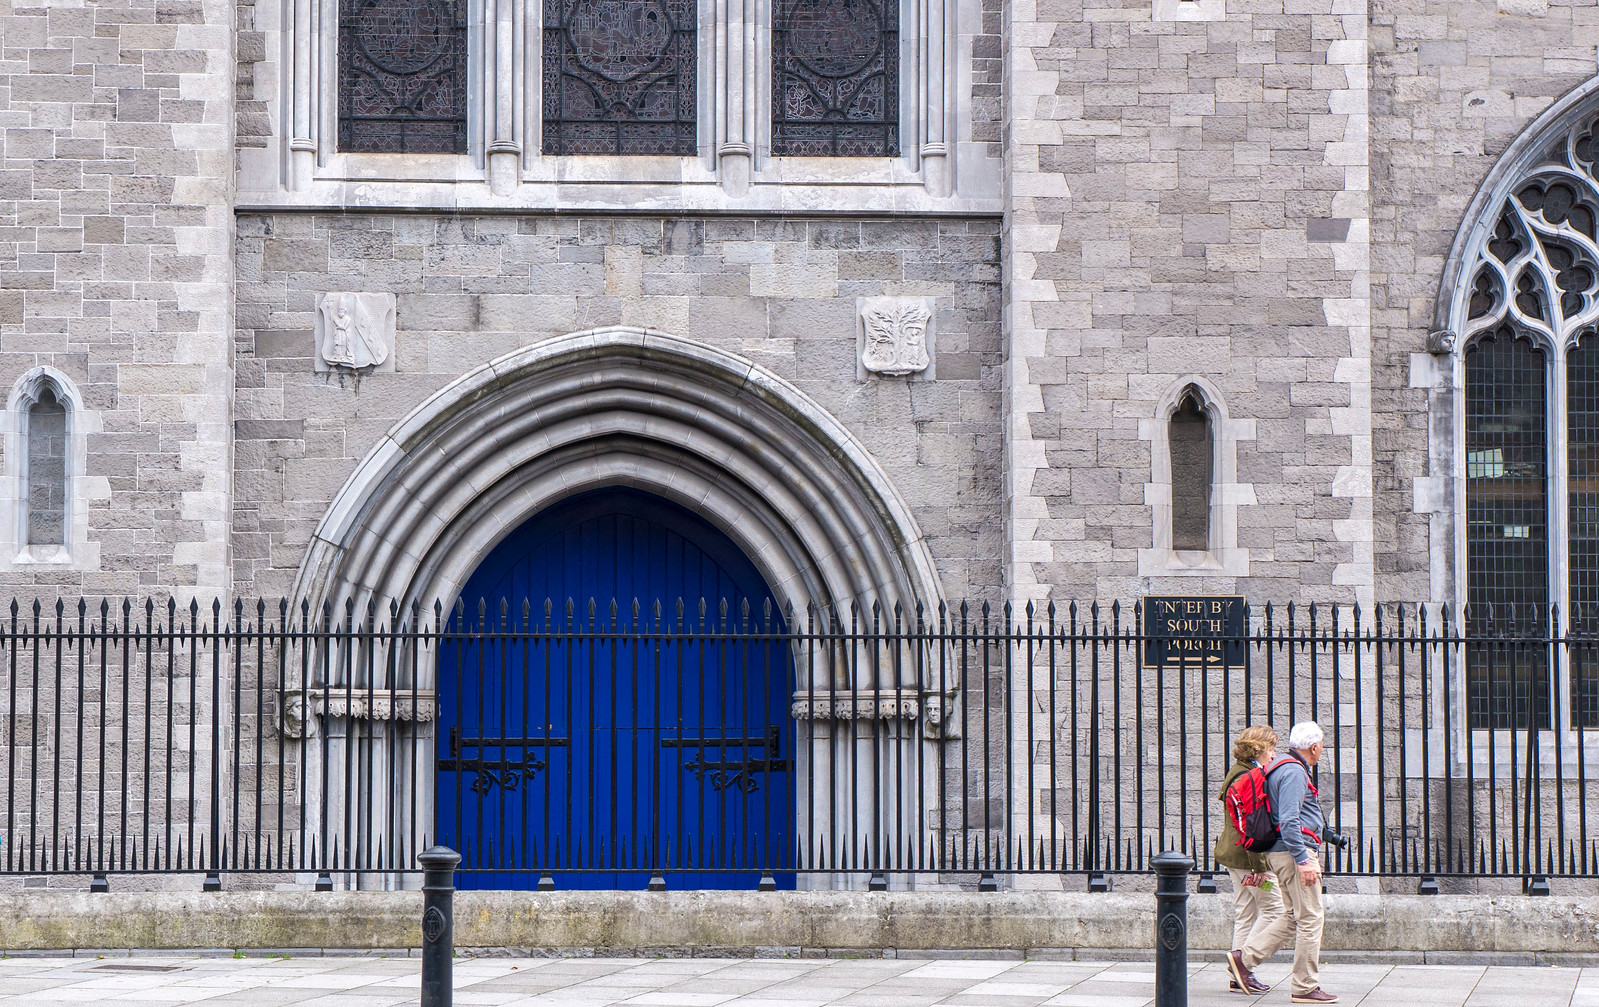 One Day in Dublin - How to Spend 24 Hours in Dublin